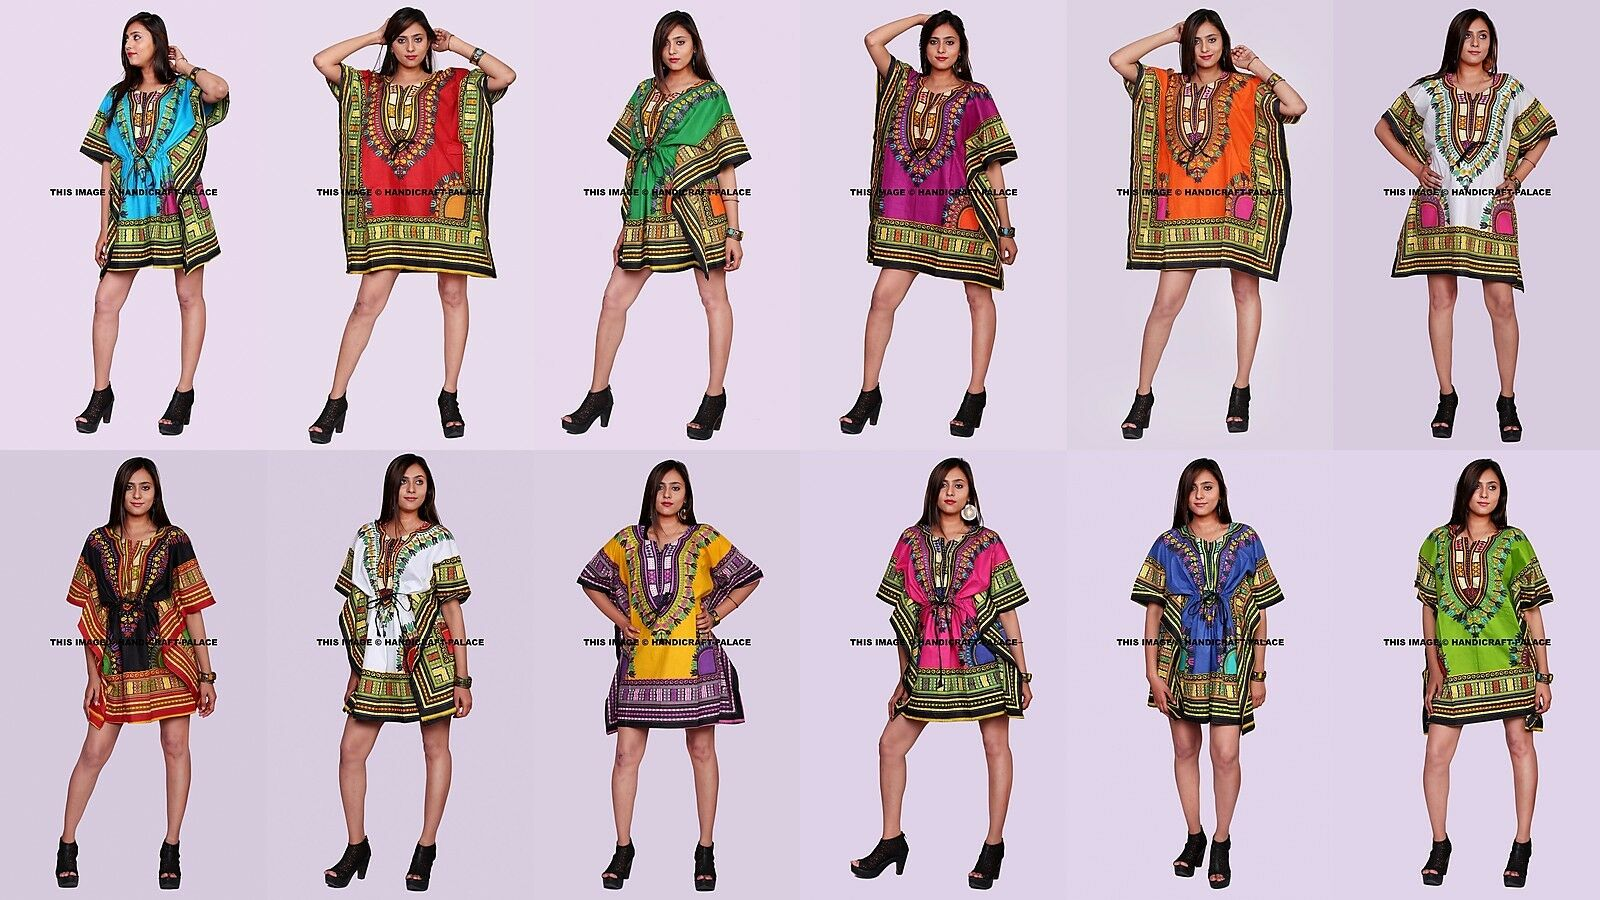 c6d081a716 Women s Caftan Dress Kaftan dashiki Hippie Maxi Gown Beach Dress 5 PC LOT  Boho oclmmk4703-Dresses